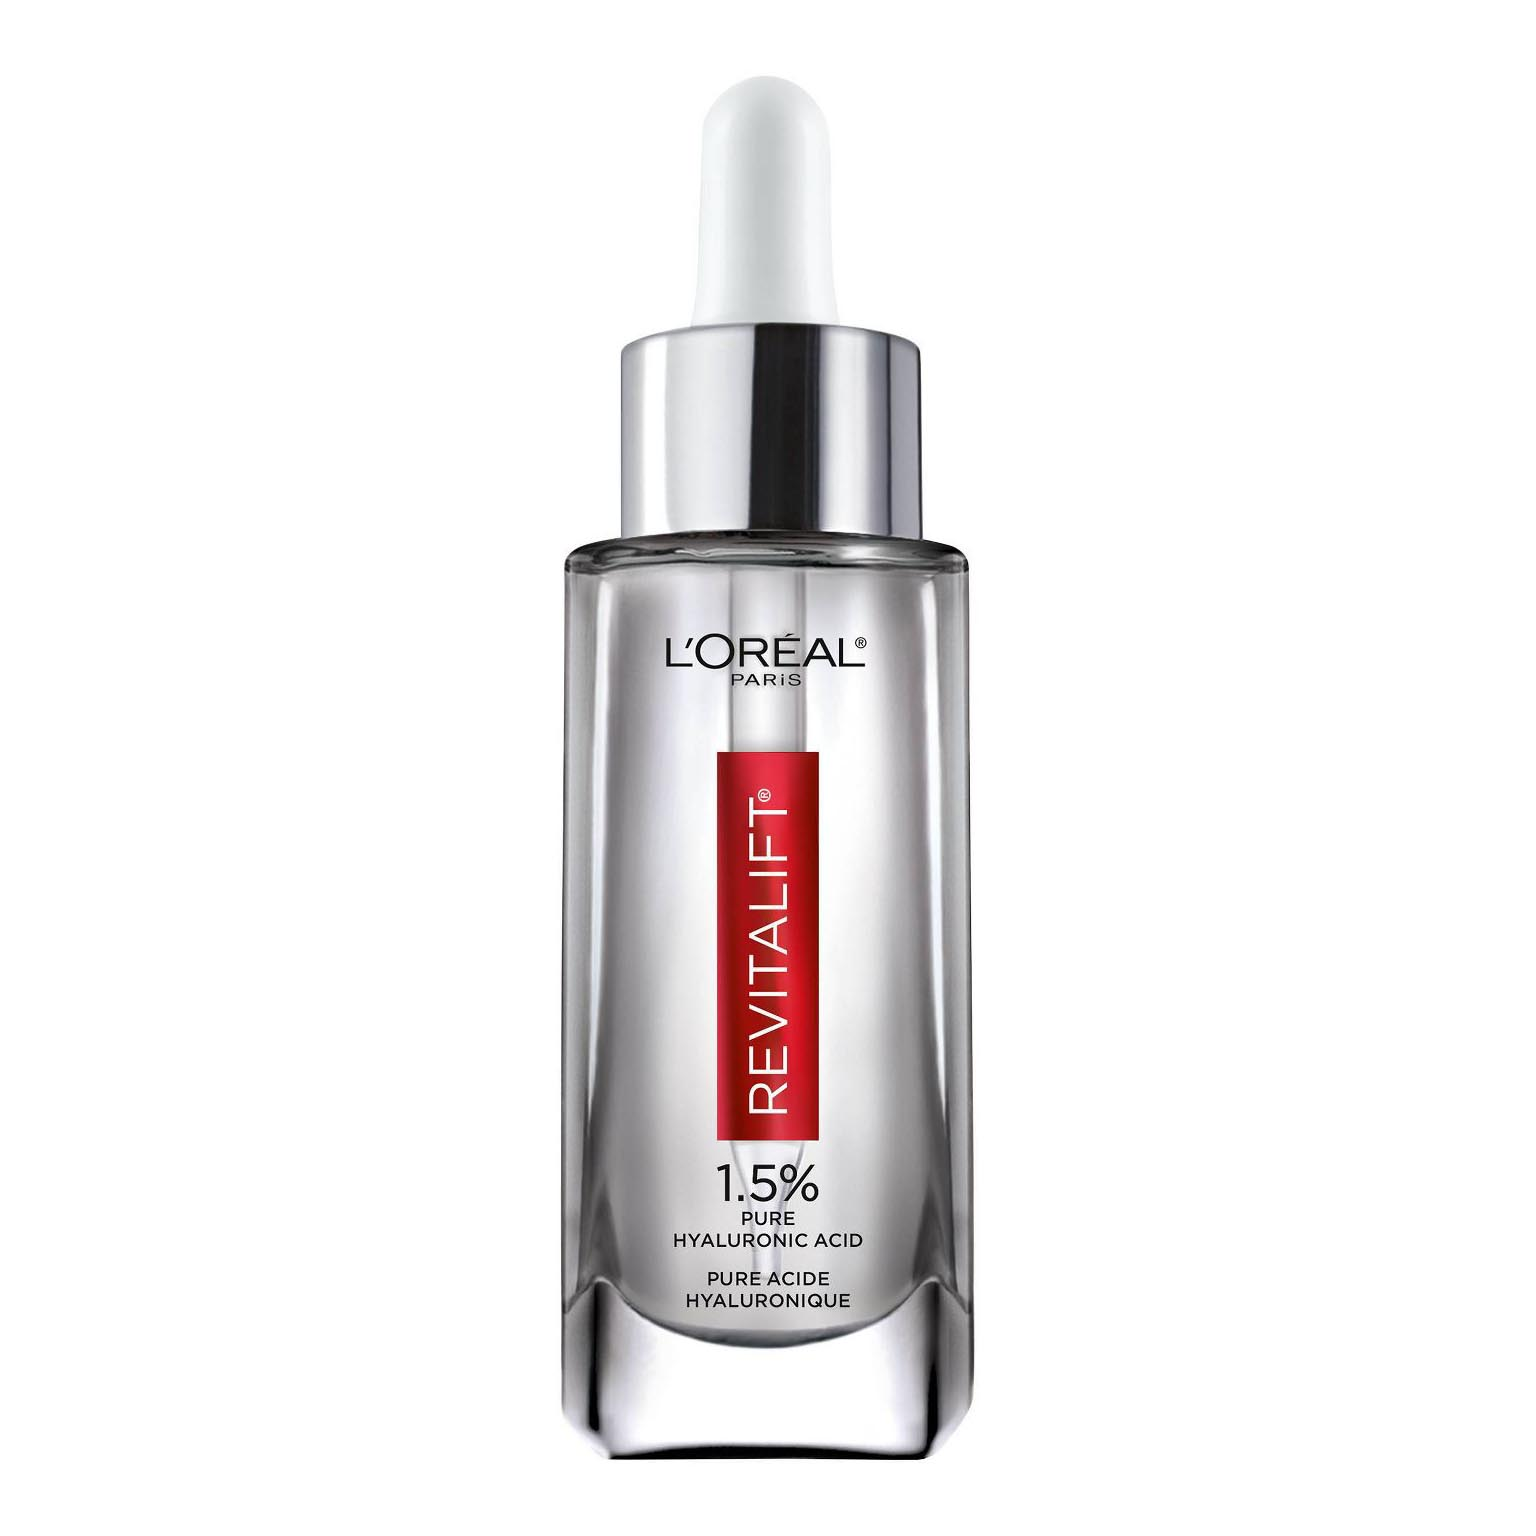 L'Oreal Revitalift Hyaluronic Acid Serum